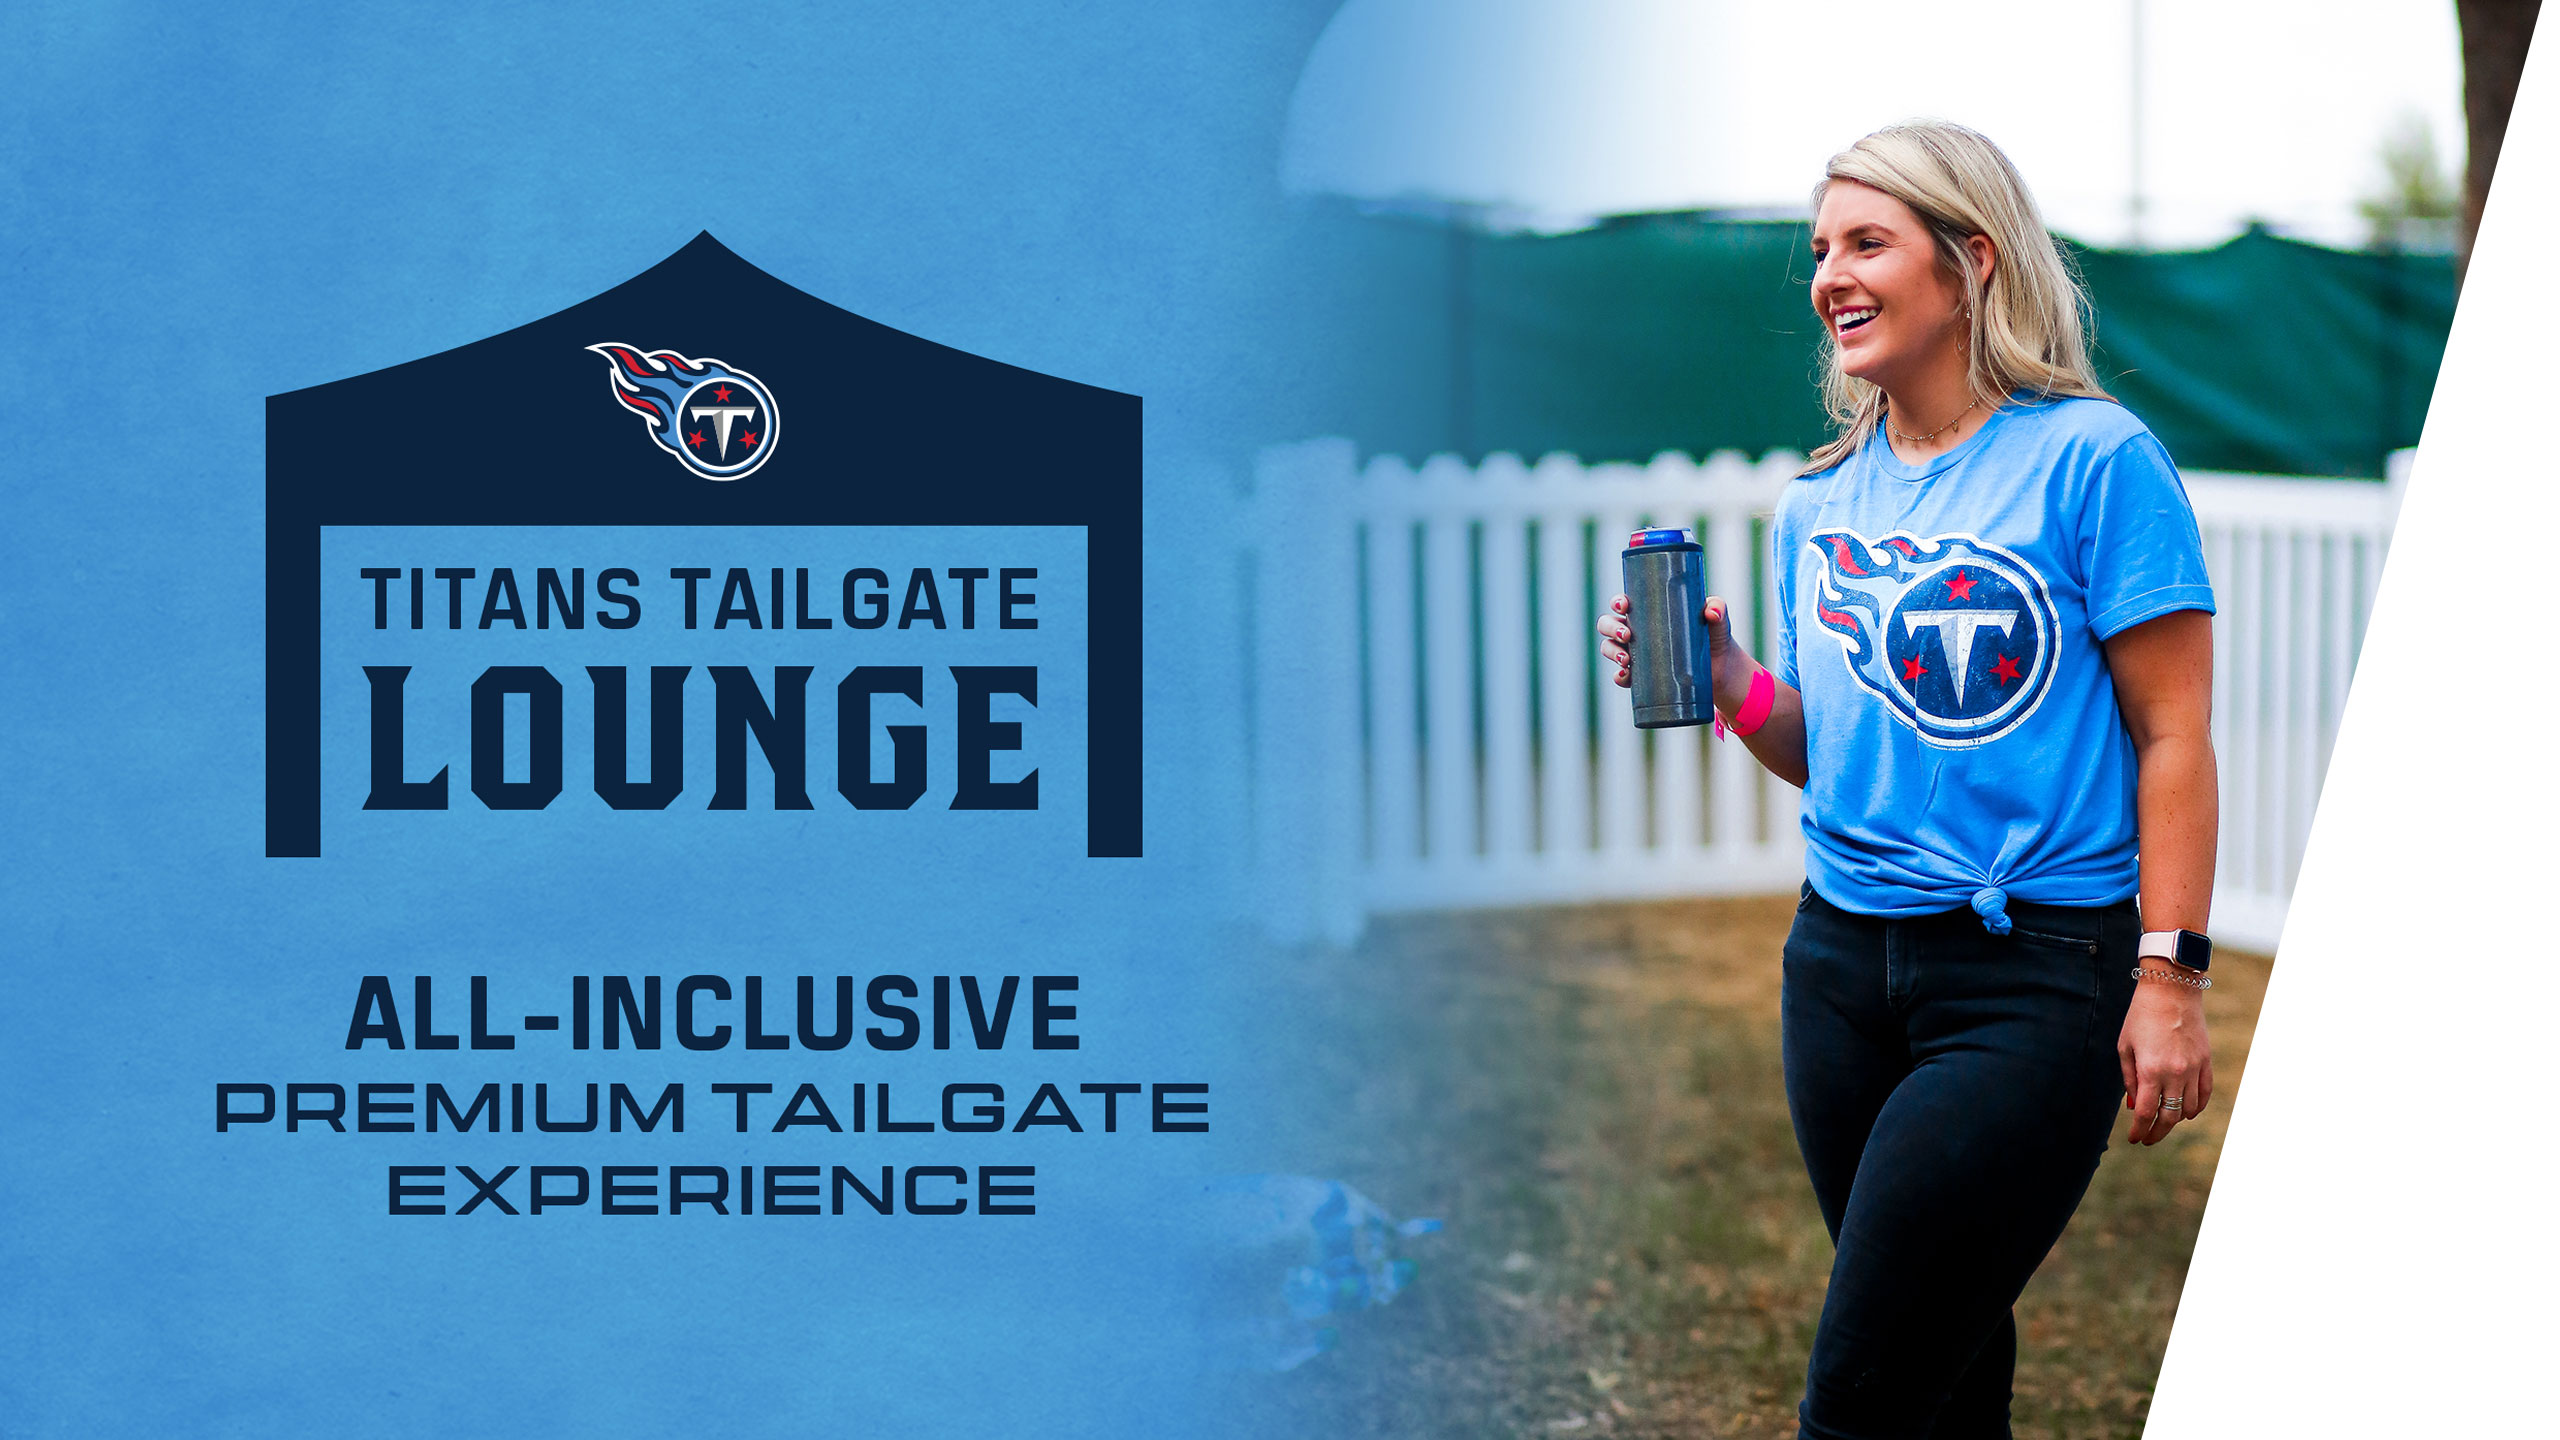 Titans Tailgate Lounge